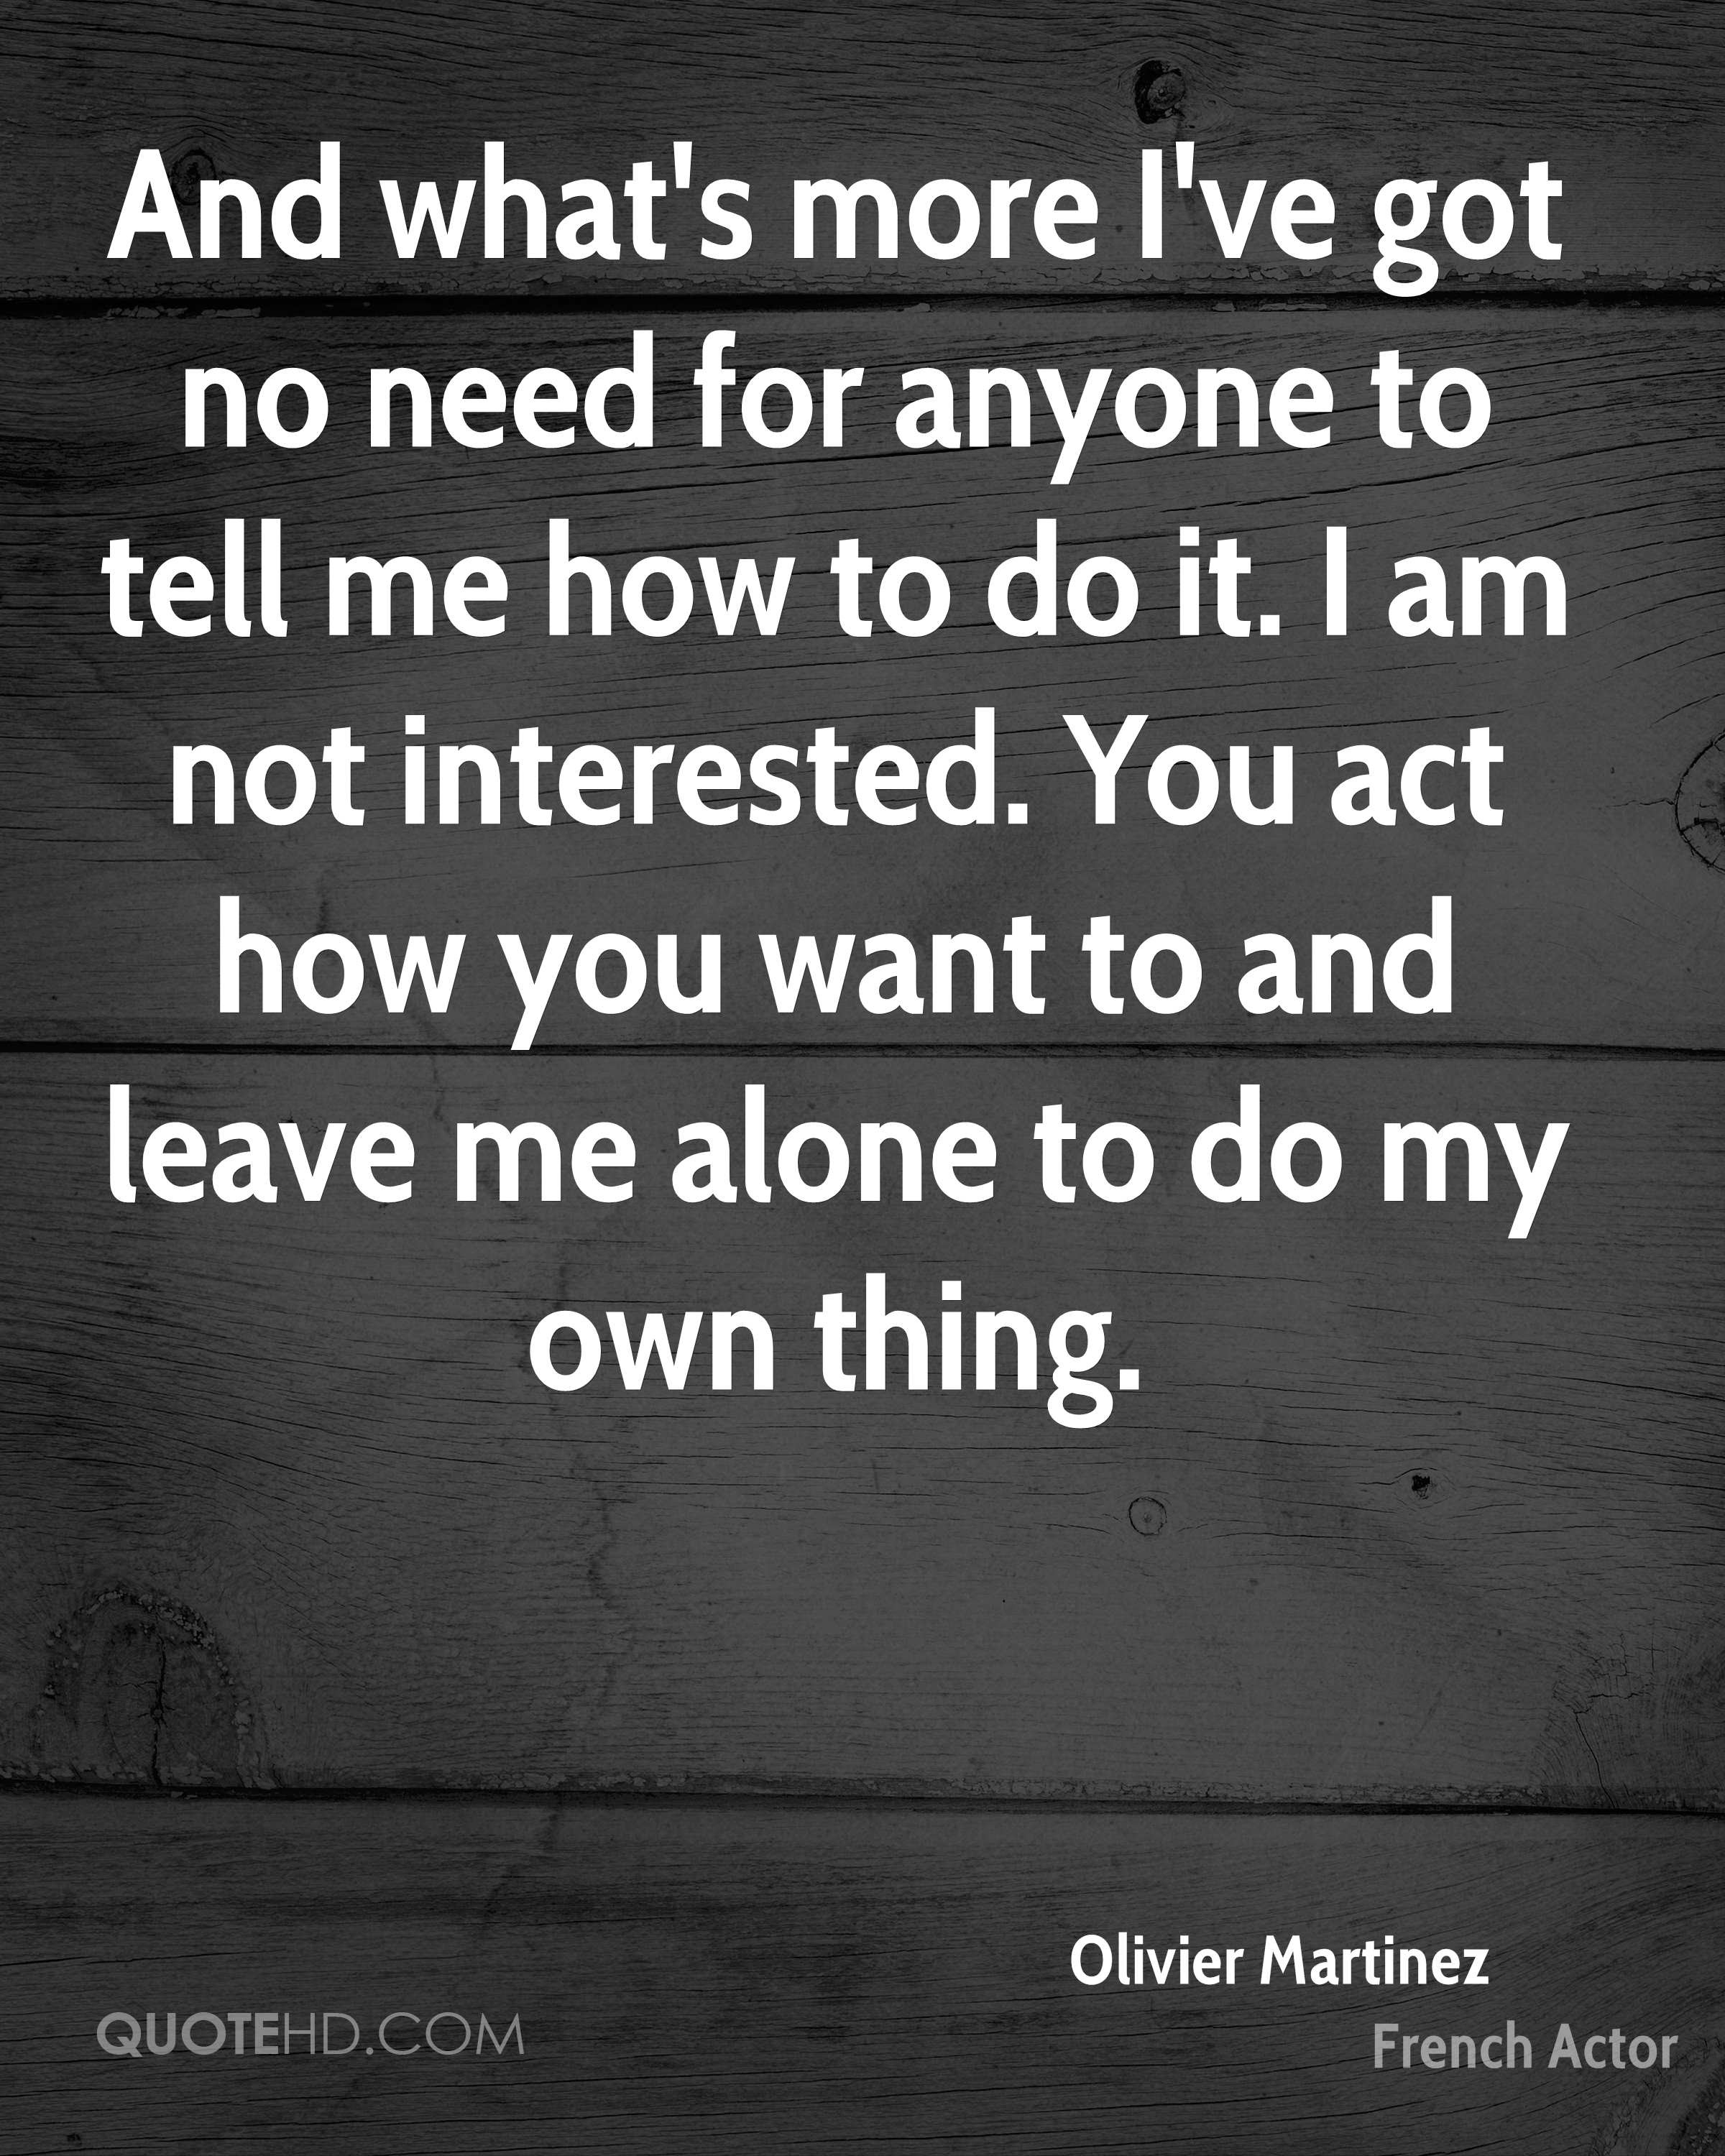 Quotes About Not Needing Anyone I Dont Need Anyone Quotes